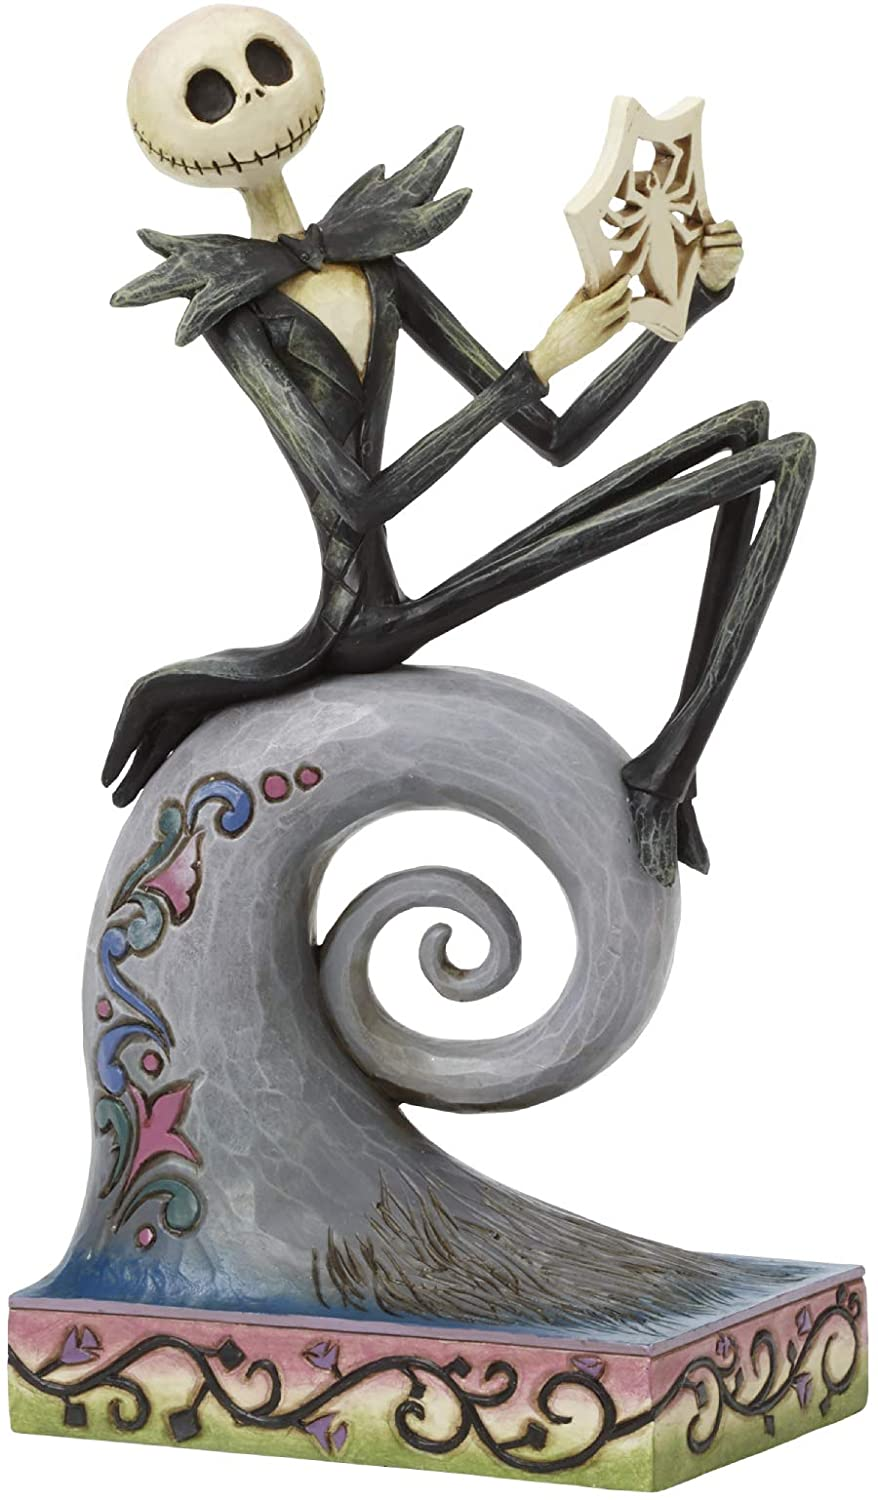 Enesco Disney Traditions by Jim Shore Nightmare Before Christmas Jack Skellington Figurine, 8.5 Inch, Multicolor